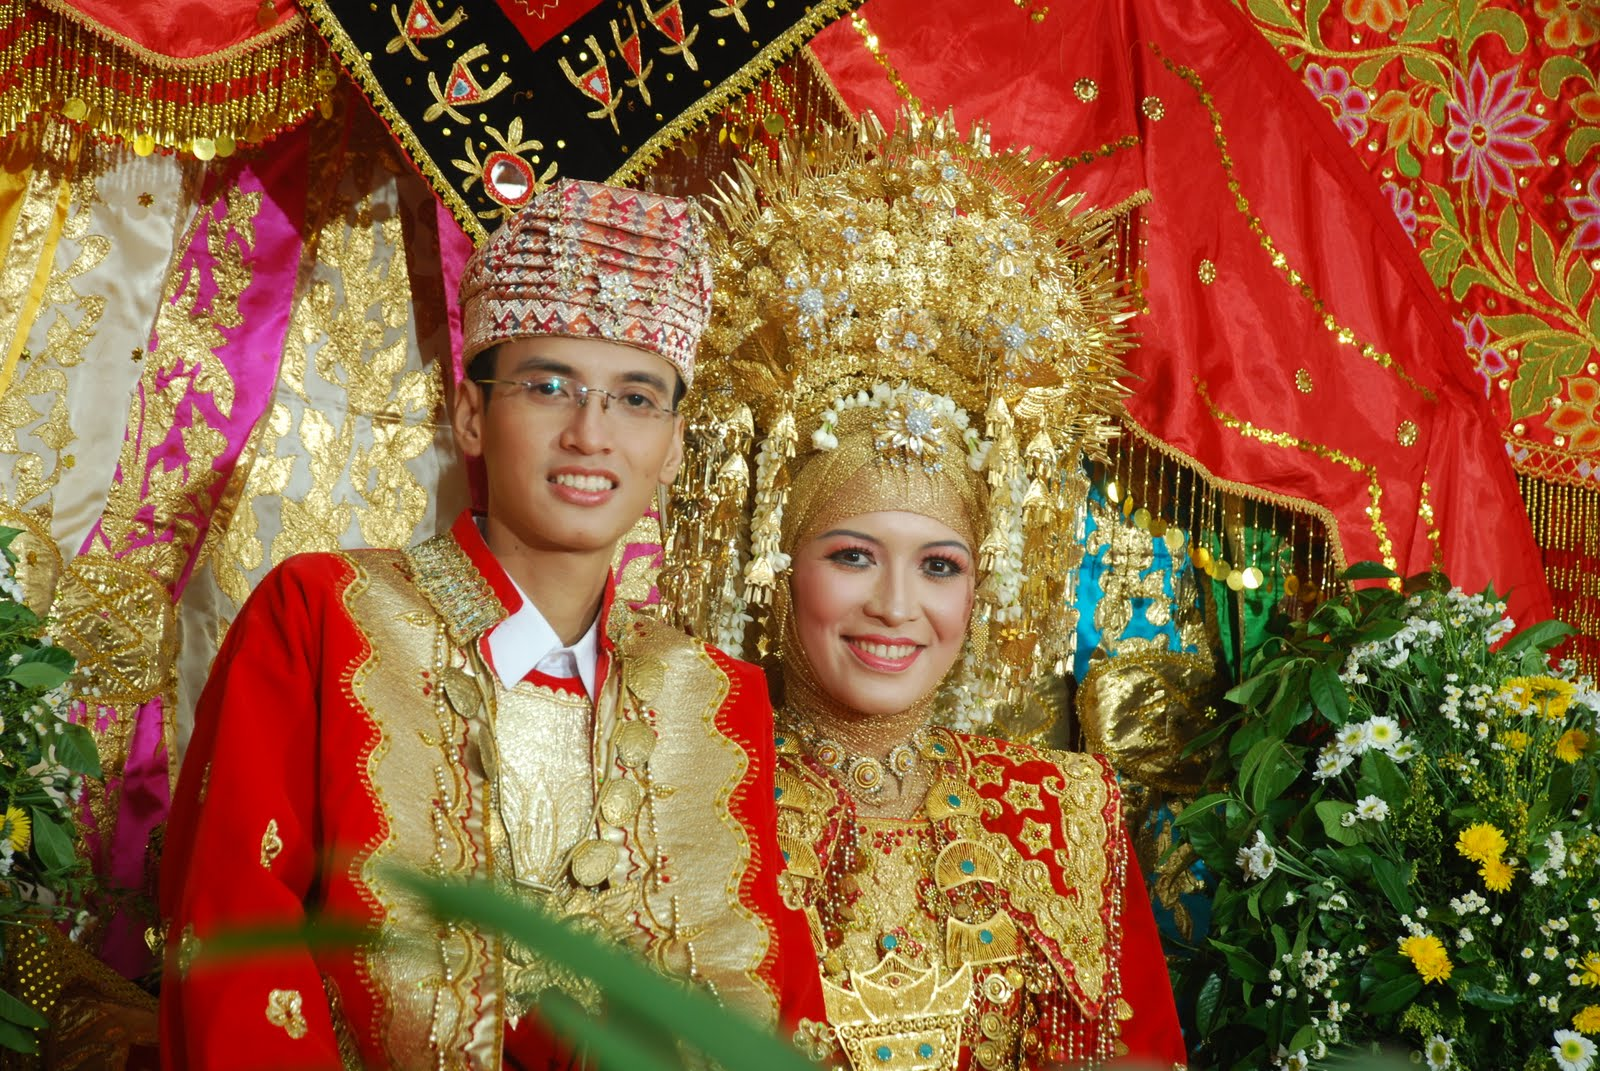 A Minangkabau Wedding Ceremony In Indonesia Traditional The Bride And Groom Will Sit Together Lounge